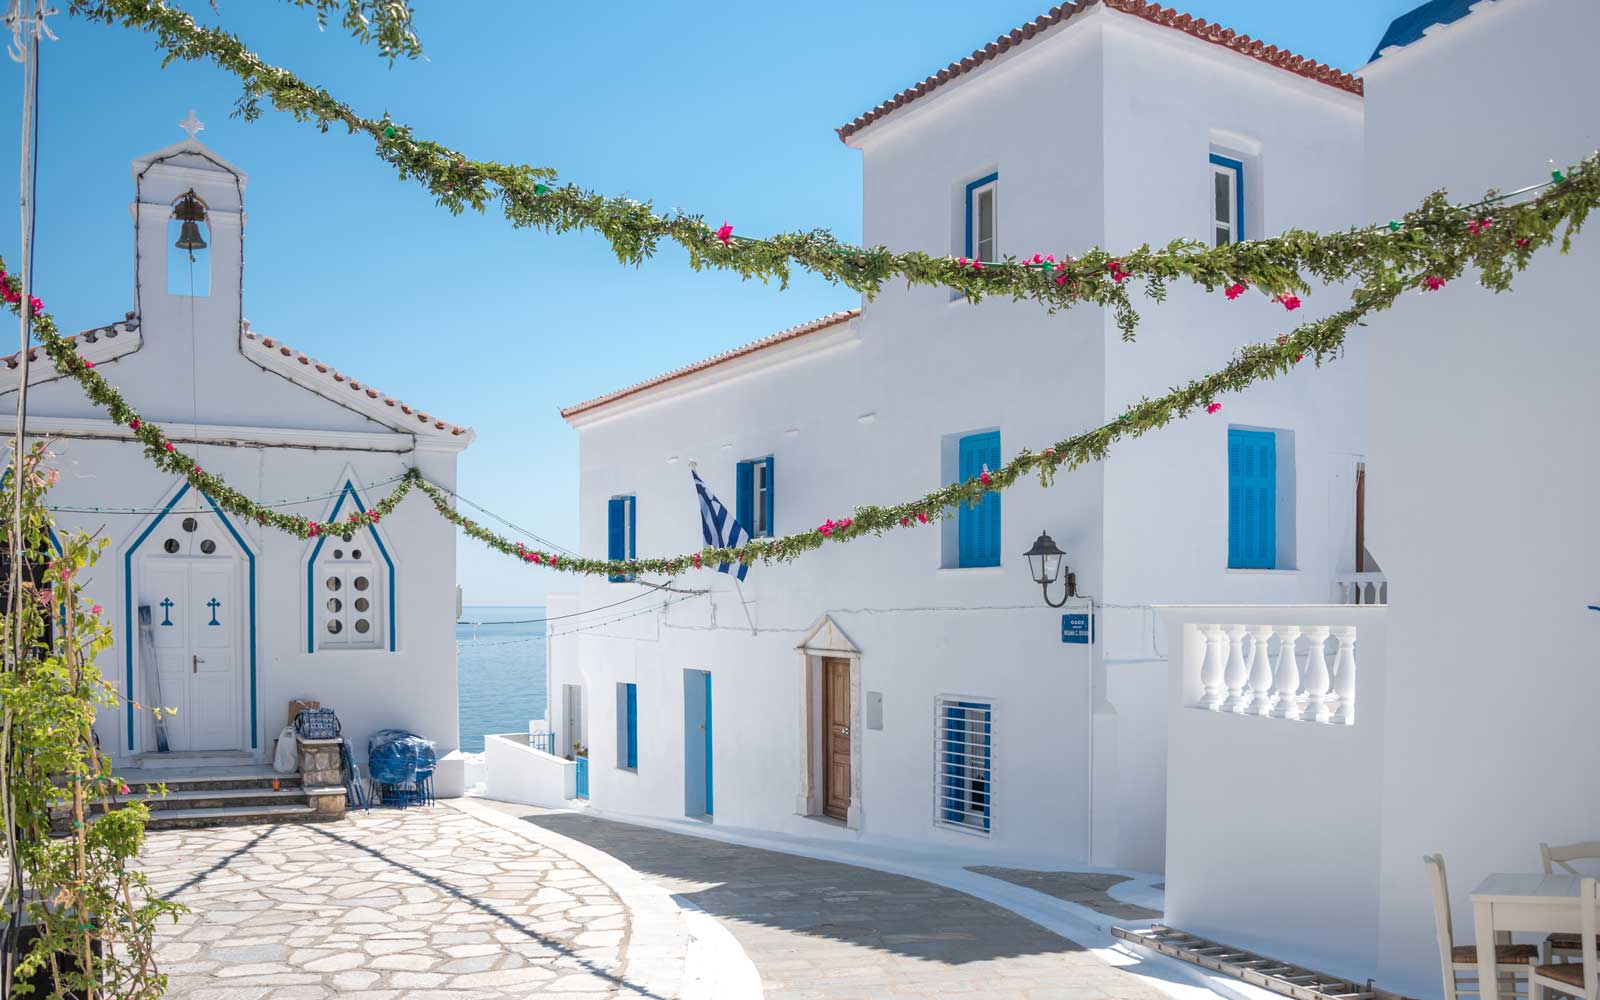 Stay in locations like the Greek island of Andros for free with Barter Week.